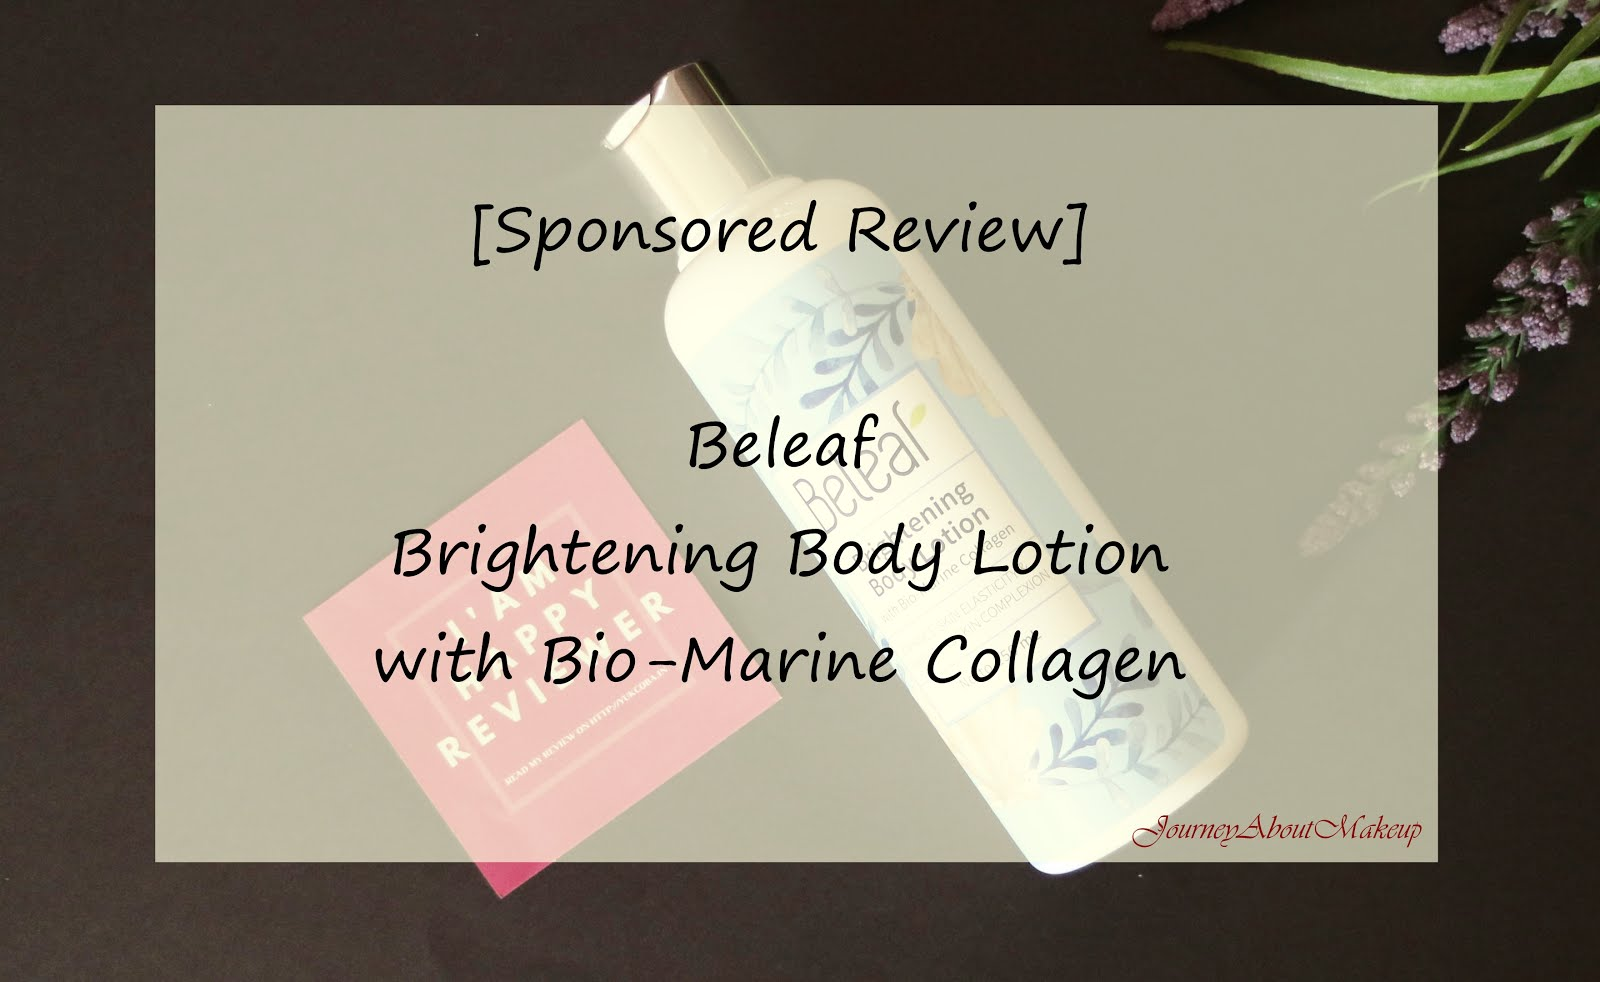 Sponsored Review Beleaf Brightening Body Lotion With Bio Marine 250ml Buat Yang Belum Tau Apa Sih Yukcobain Itu Aku Jelasin Secara Singkat Yah Jadi Merupakan Sebuah Platform Memungkinkan Kita Untuk